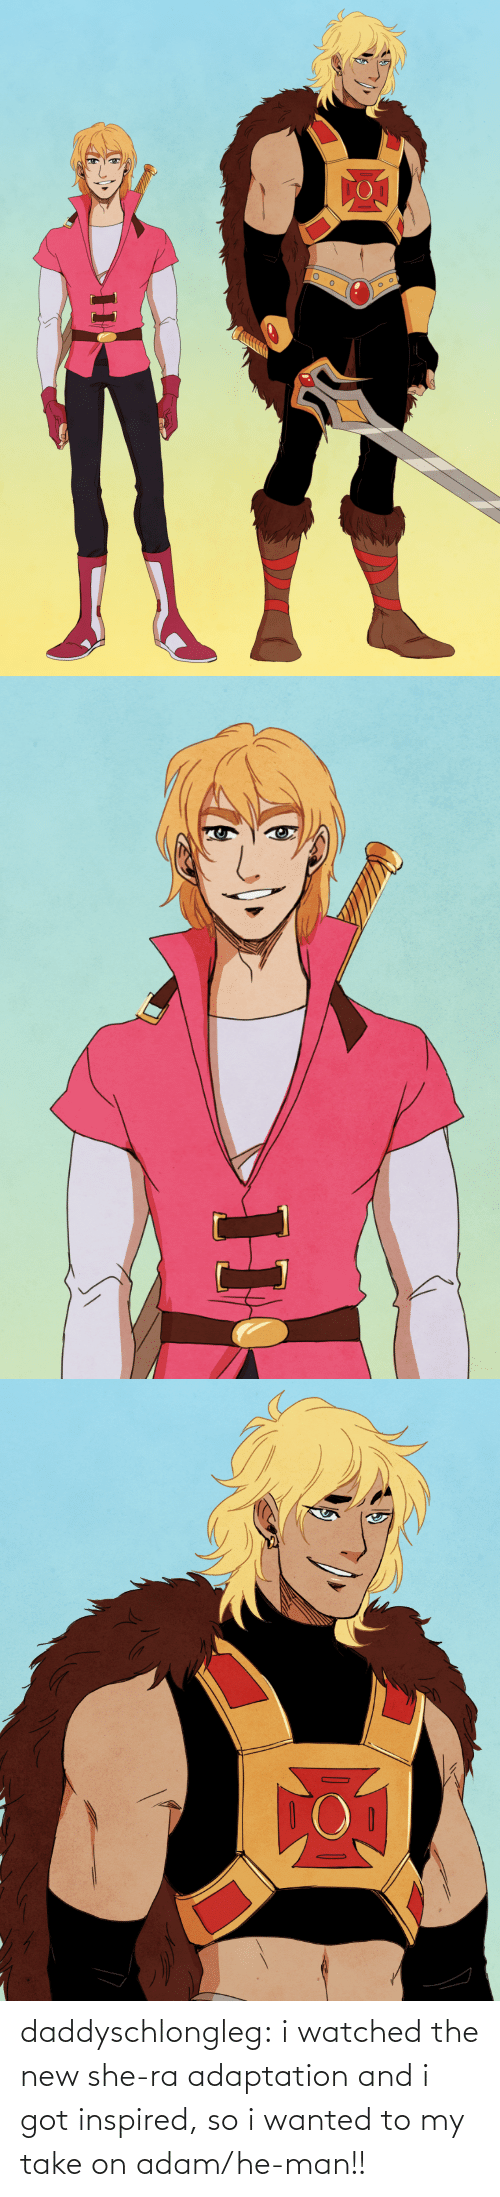 The New: daddyschlongleg:  i watched the new she-ra adaptation and i got inspired, so i wanted to my take on adam/he-man!!